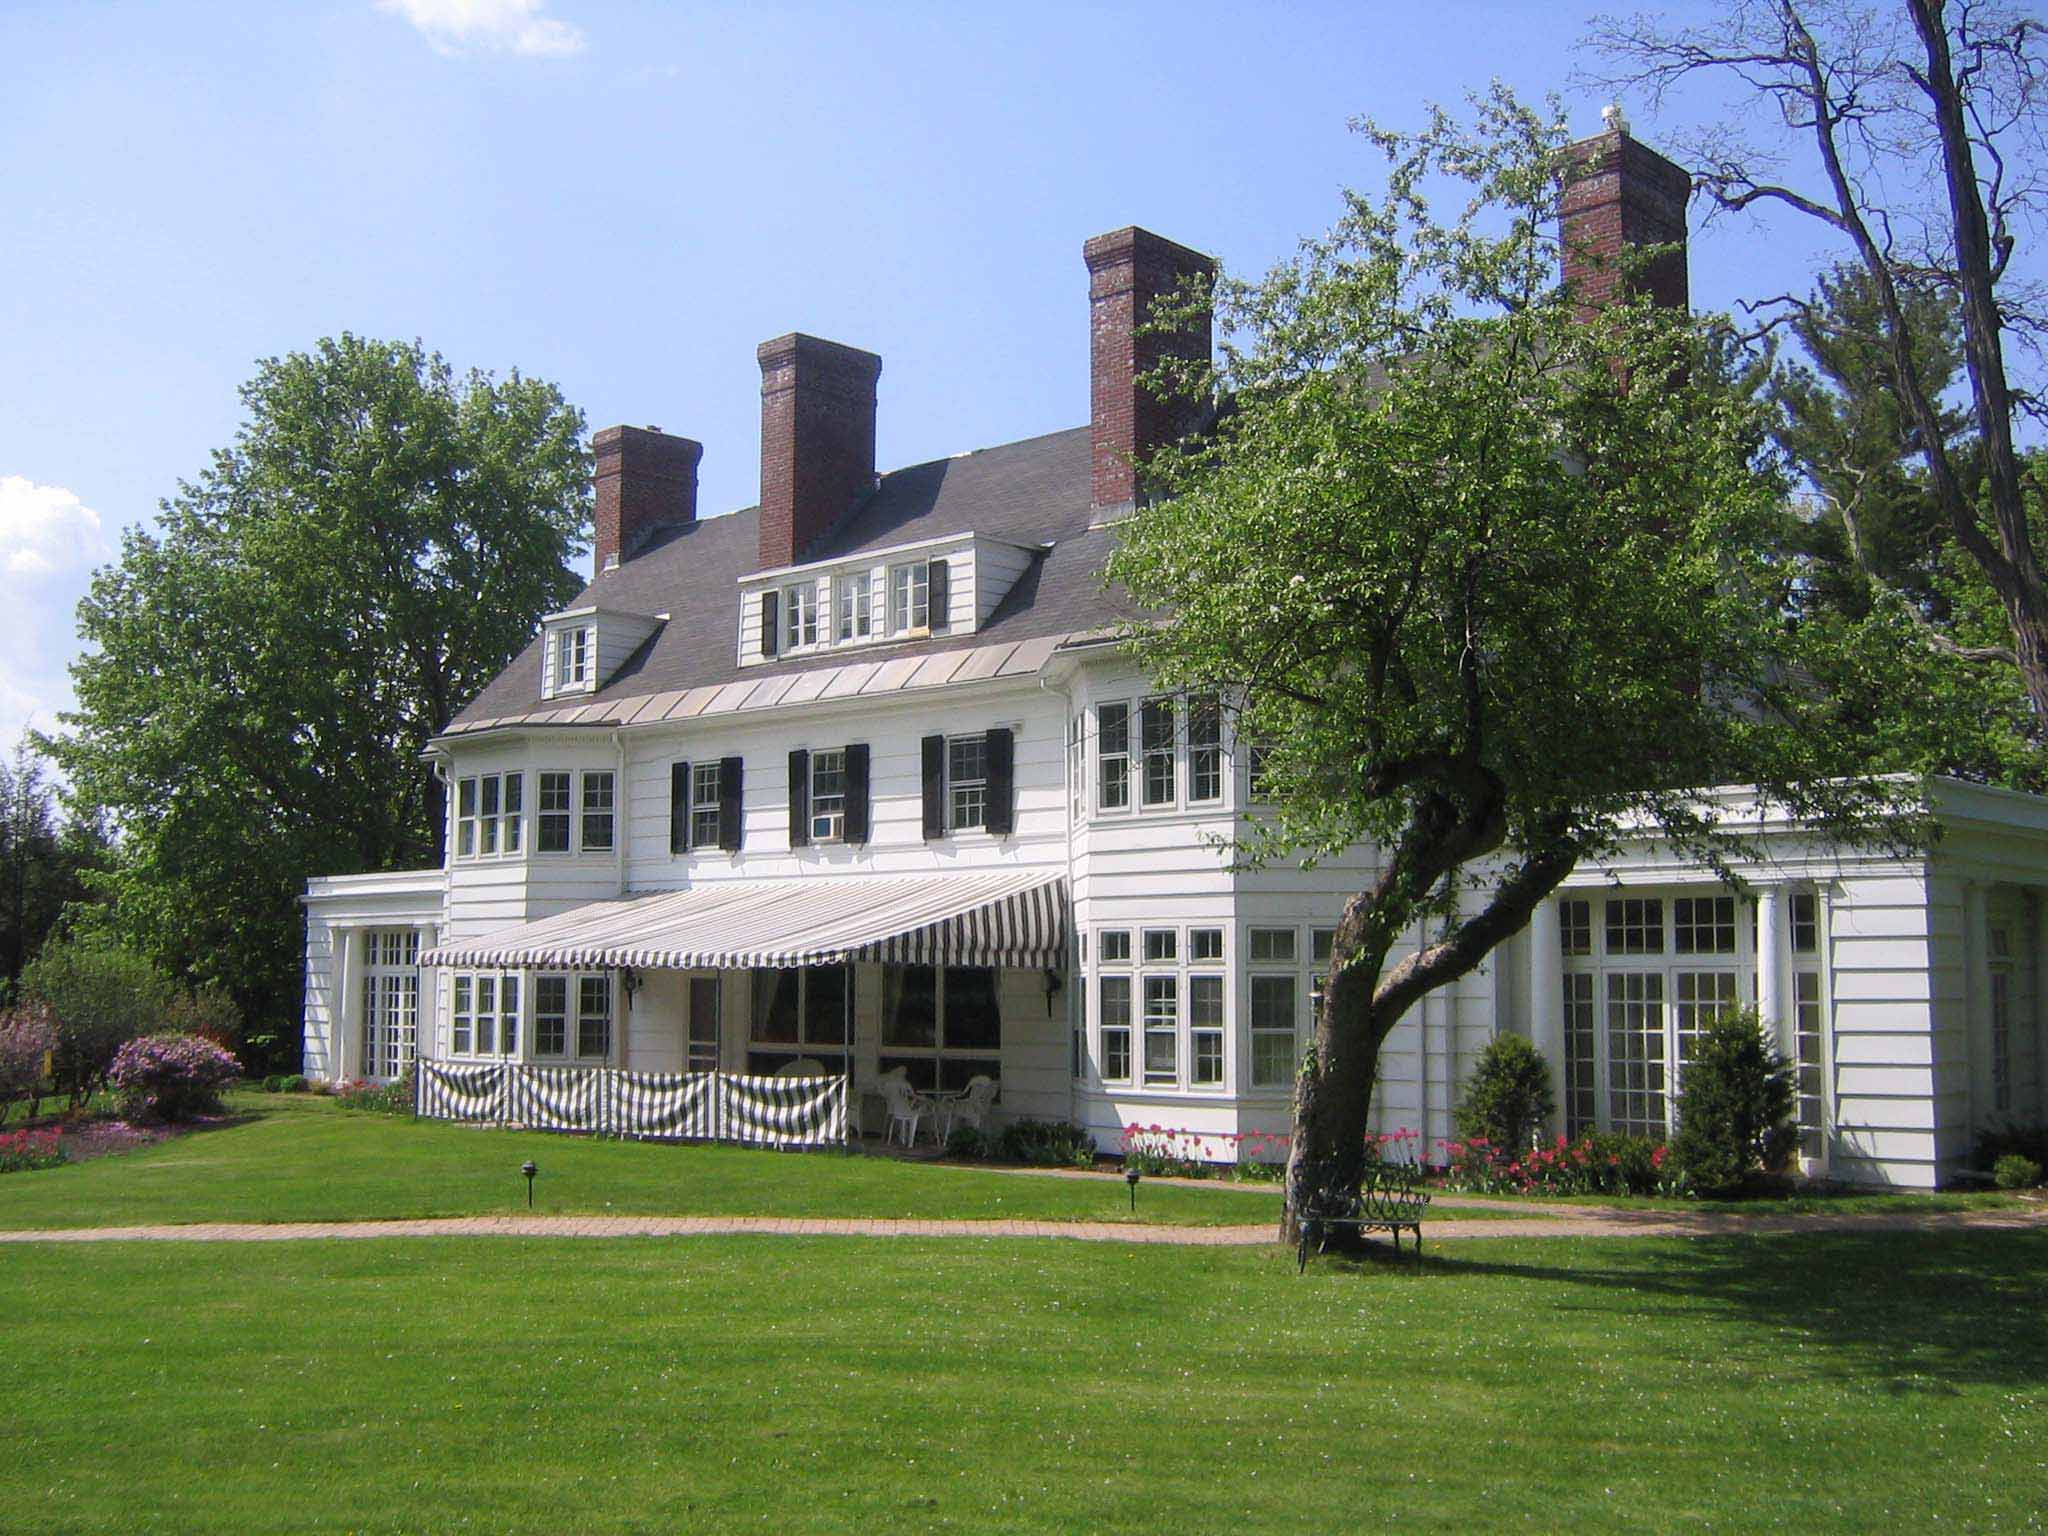 Vermont Vacation Deals At The Four Chimneys Inn